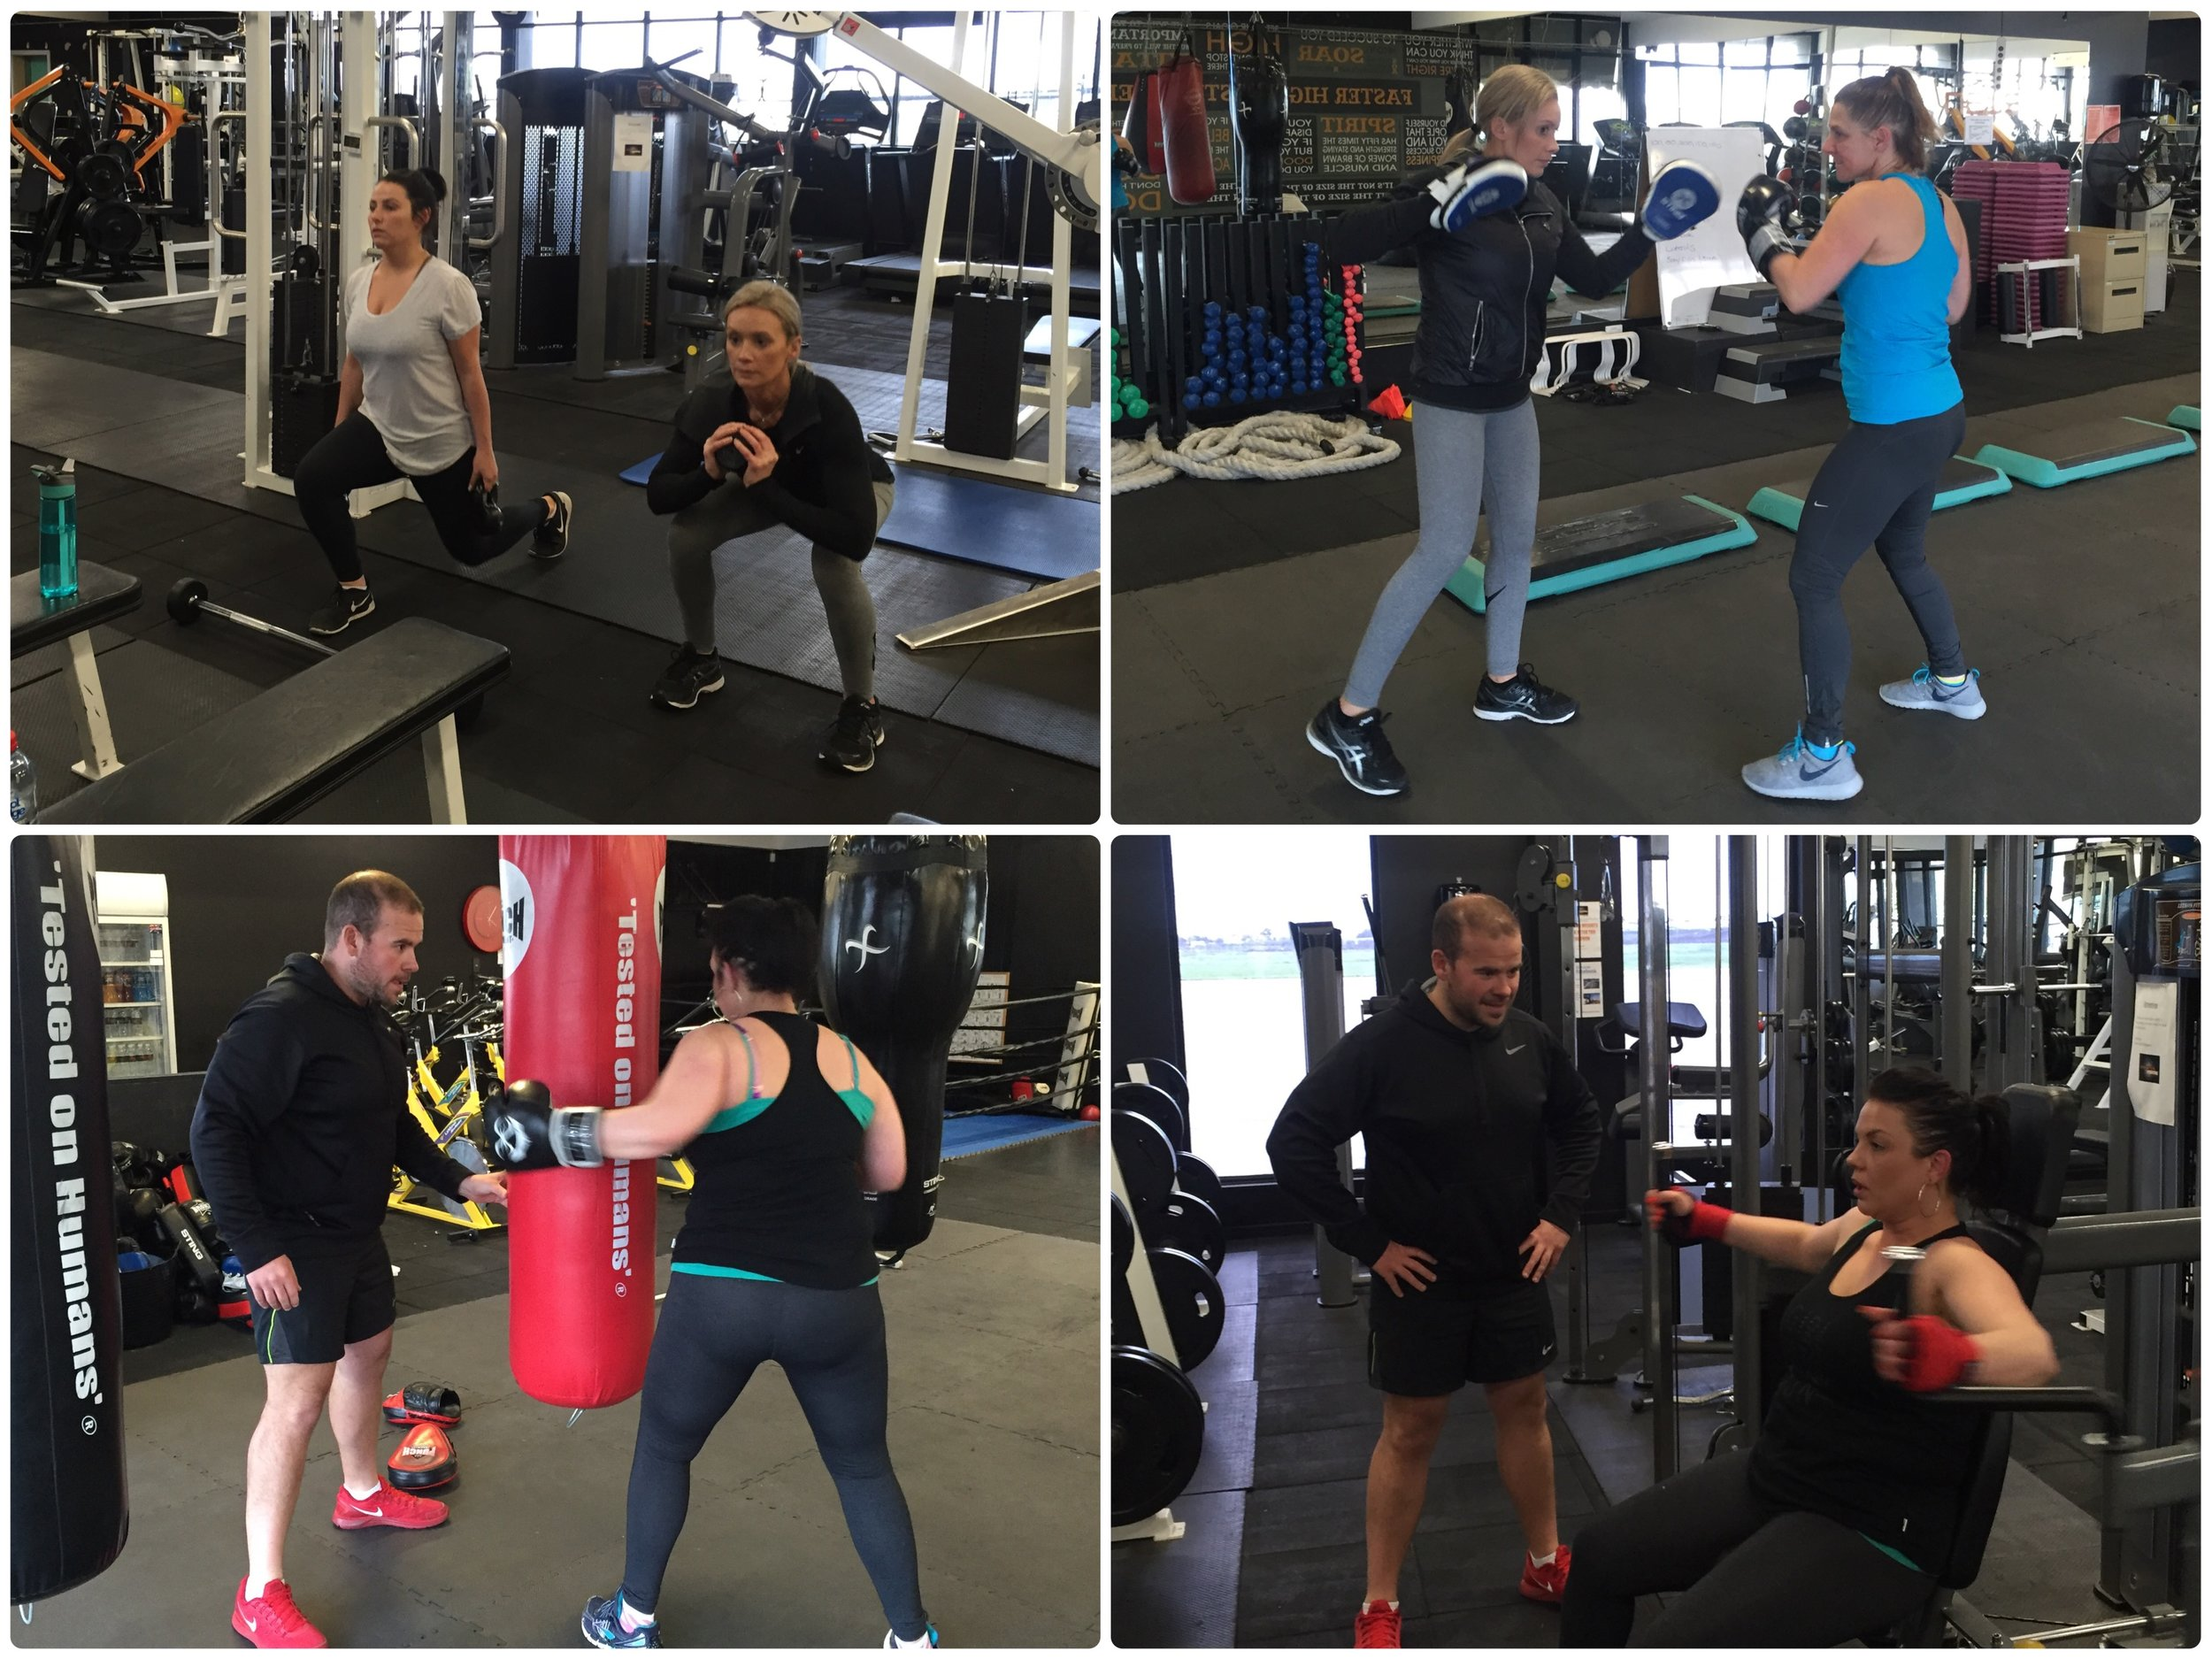 personal-trainer-frb-je-3785216.jpg